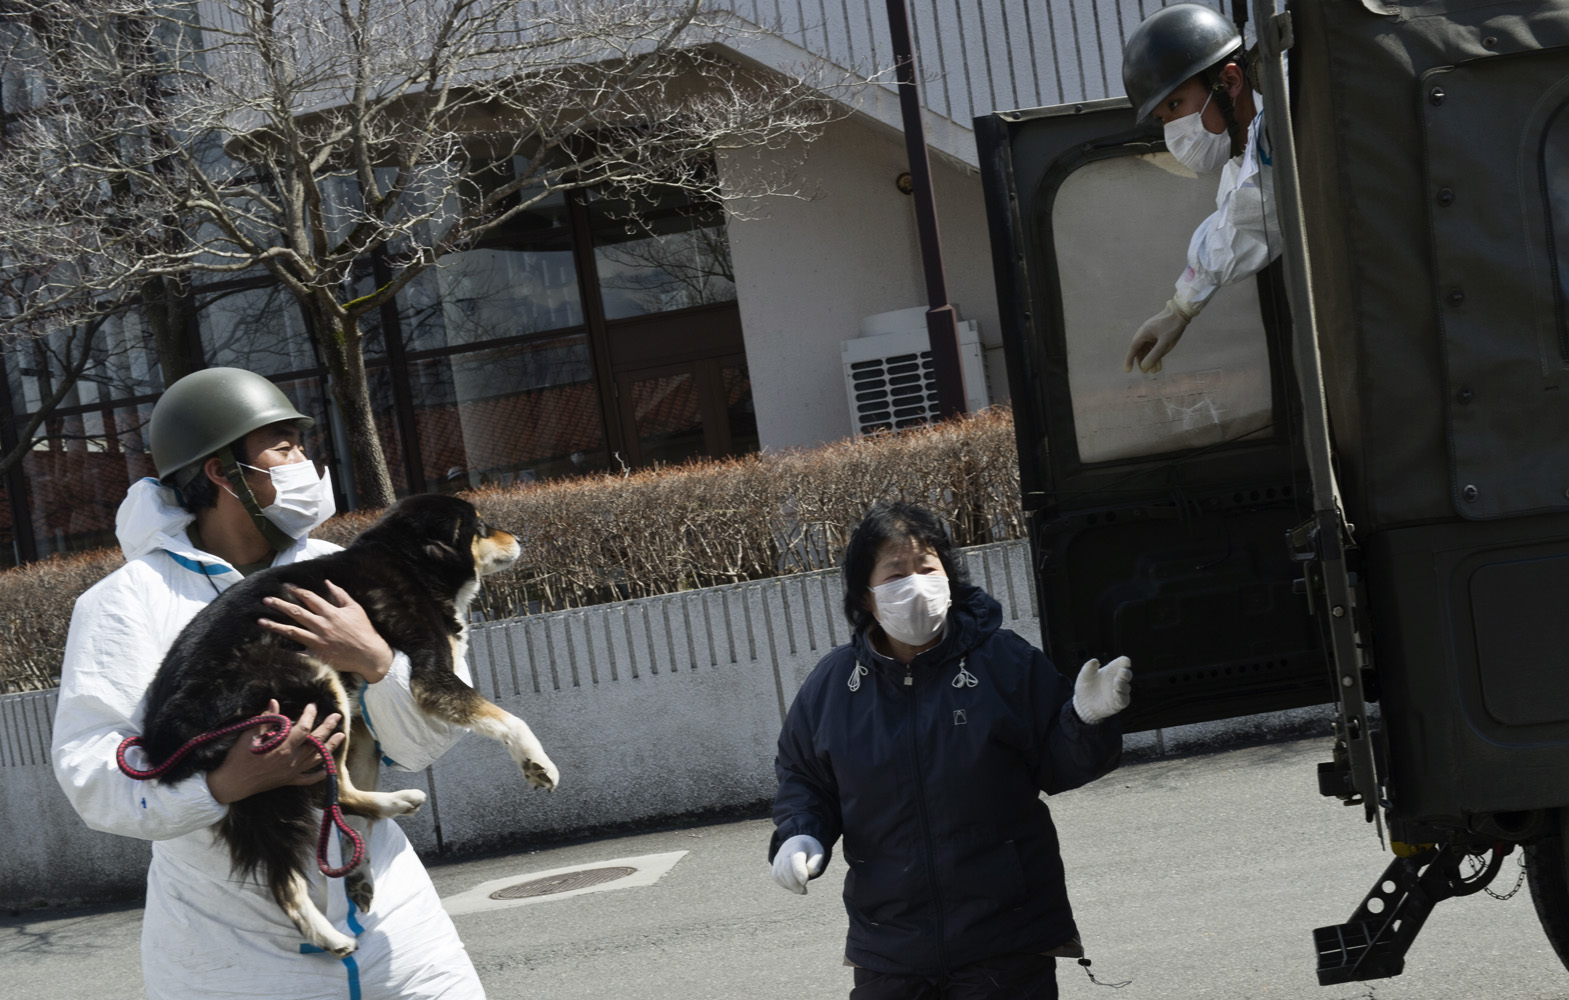 Kawamata,  Japan, 26 March 2011  Soldier taking a dog for radioactivy screening at Kawamata City, 60 km from Fukushima Nuclear Power Plant.